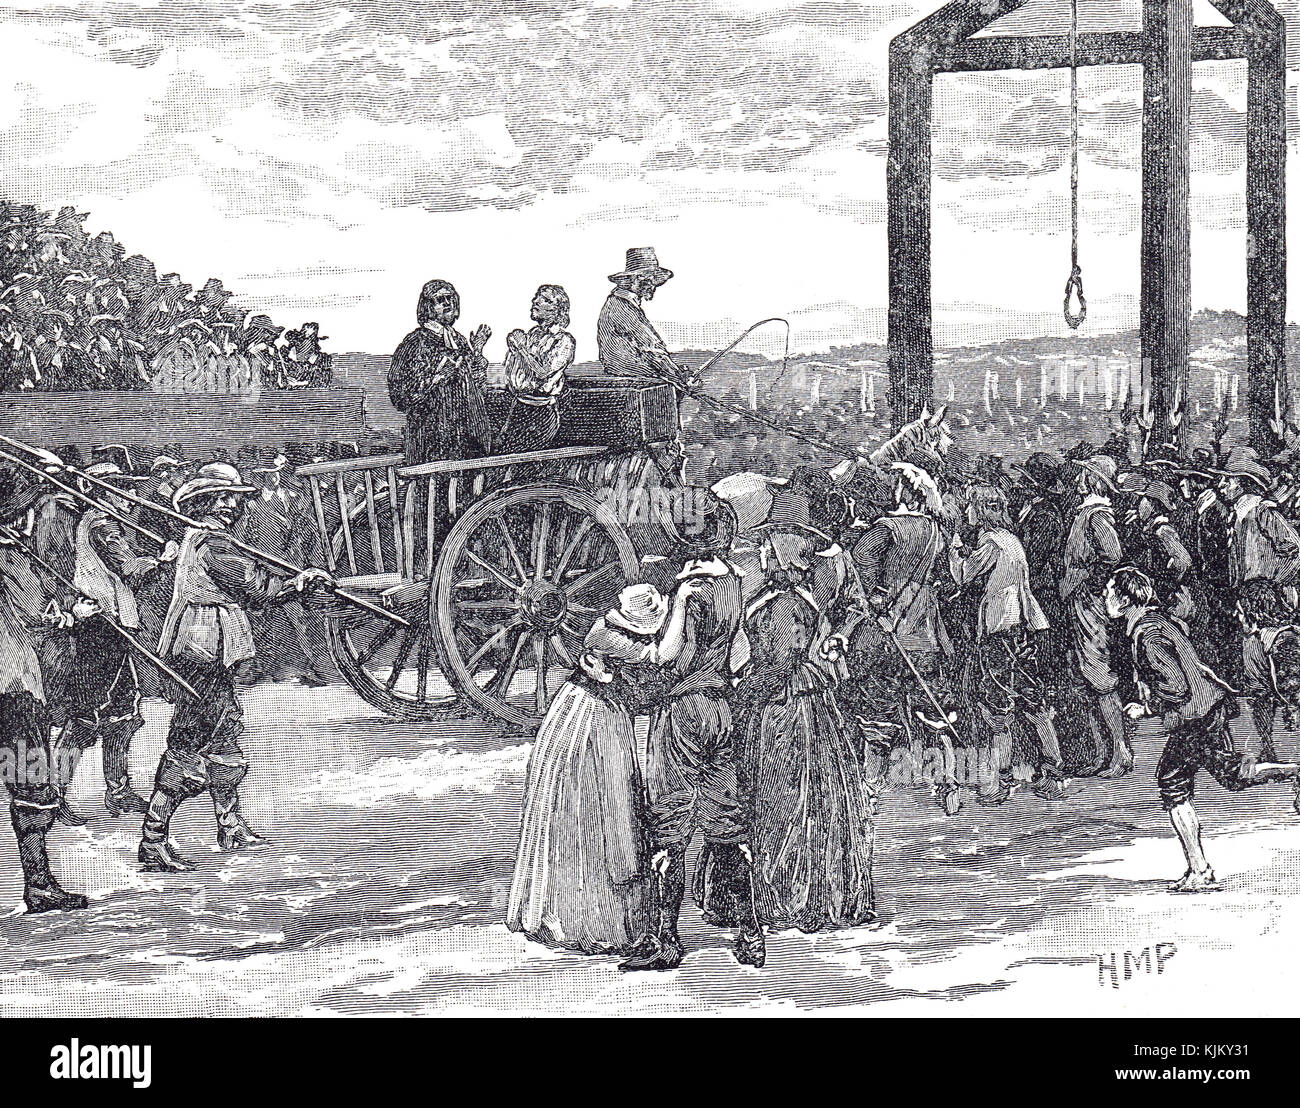 Tyburn Gallows at the time of Charles I - Stock Image